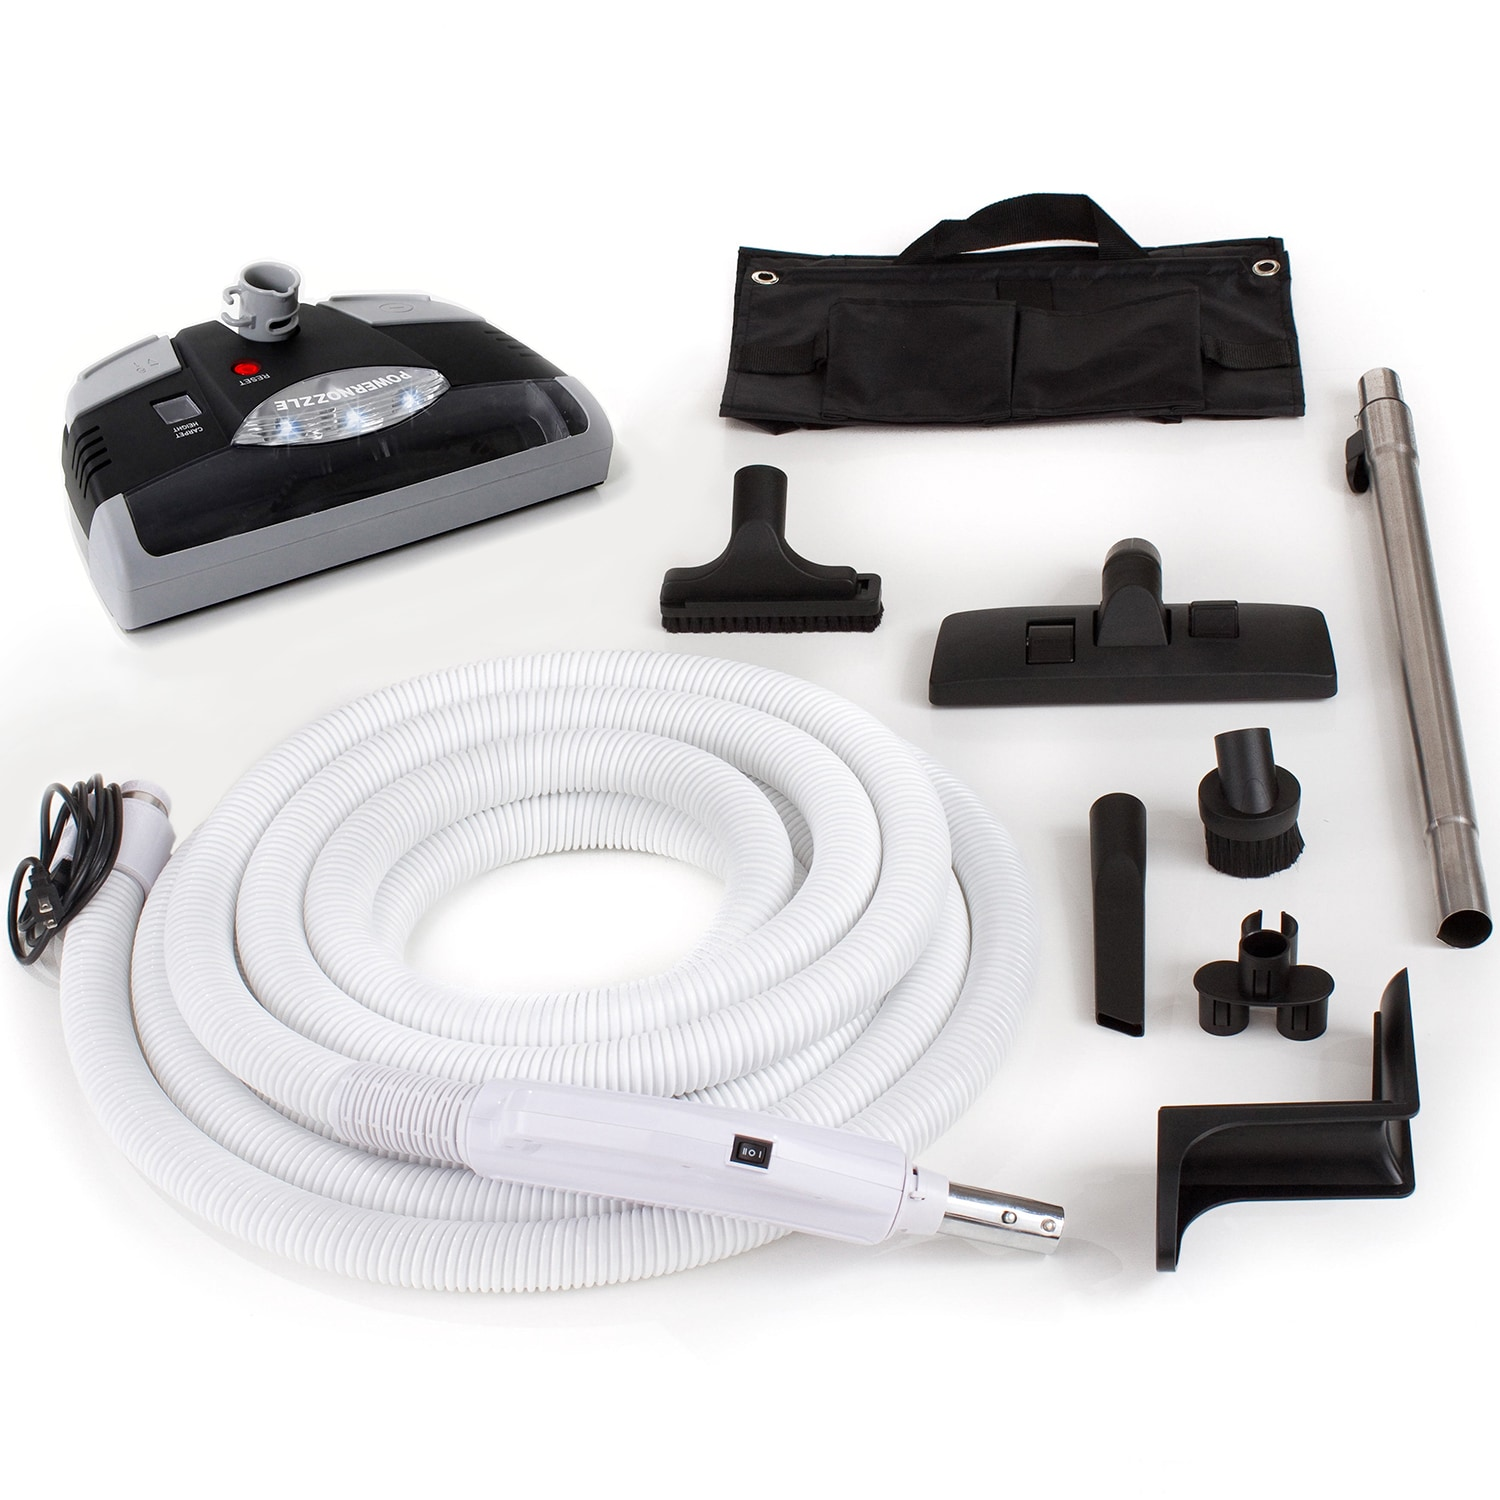 GV 35-foot Central Vacuum Kit with Power Head and Tools (...